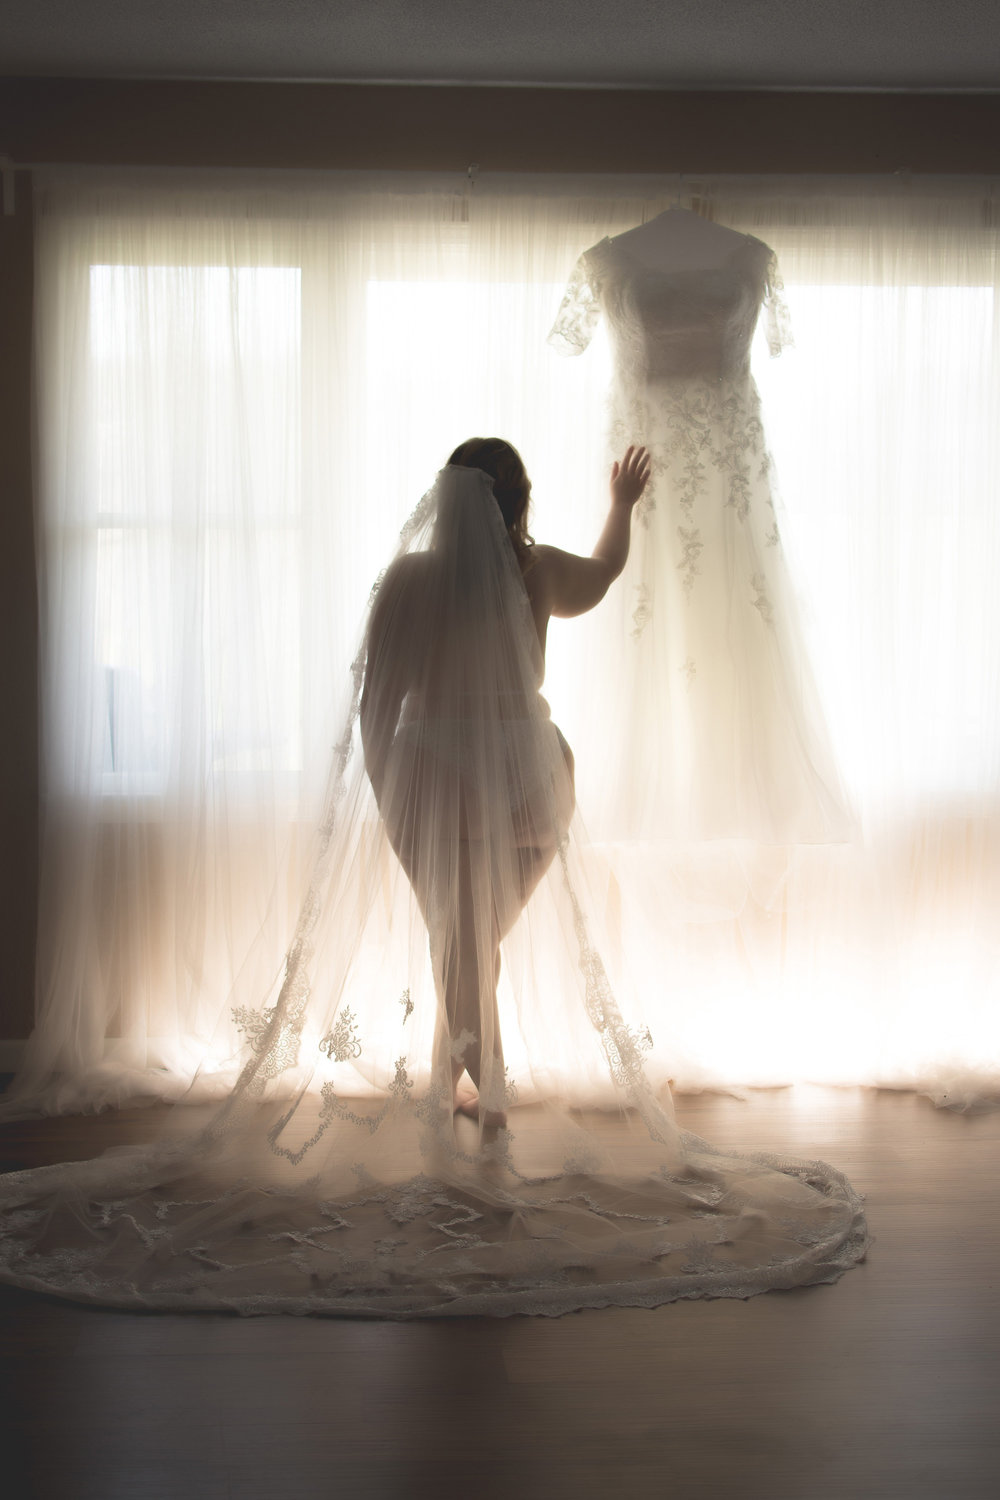 Bride in lingerie and veil looks at wedding dress